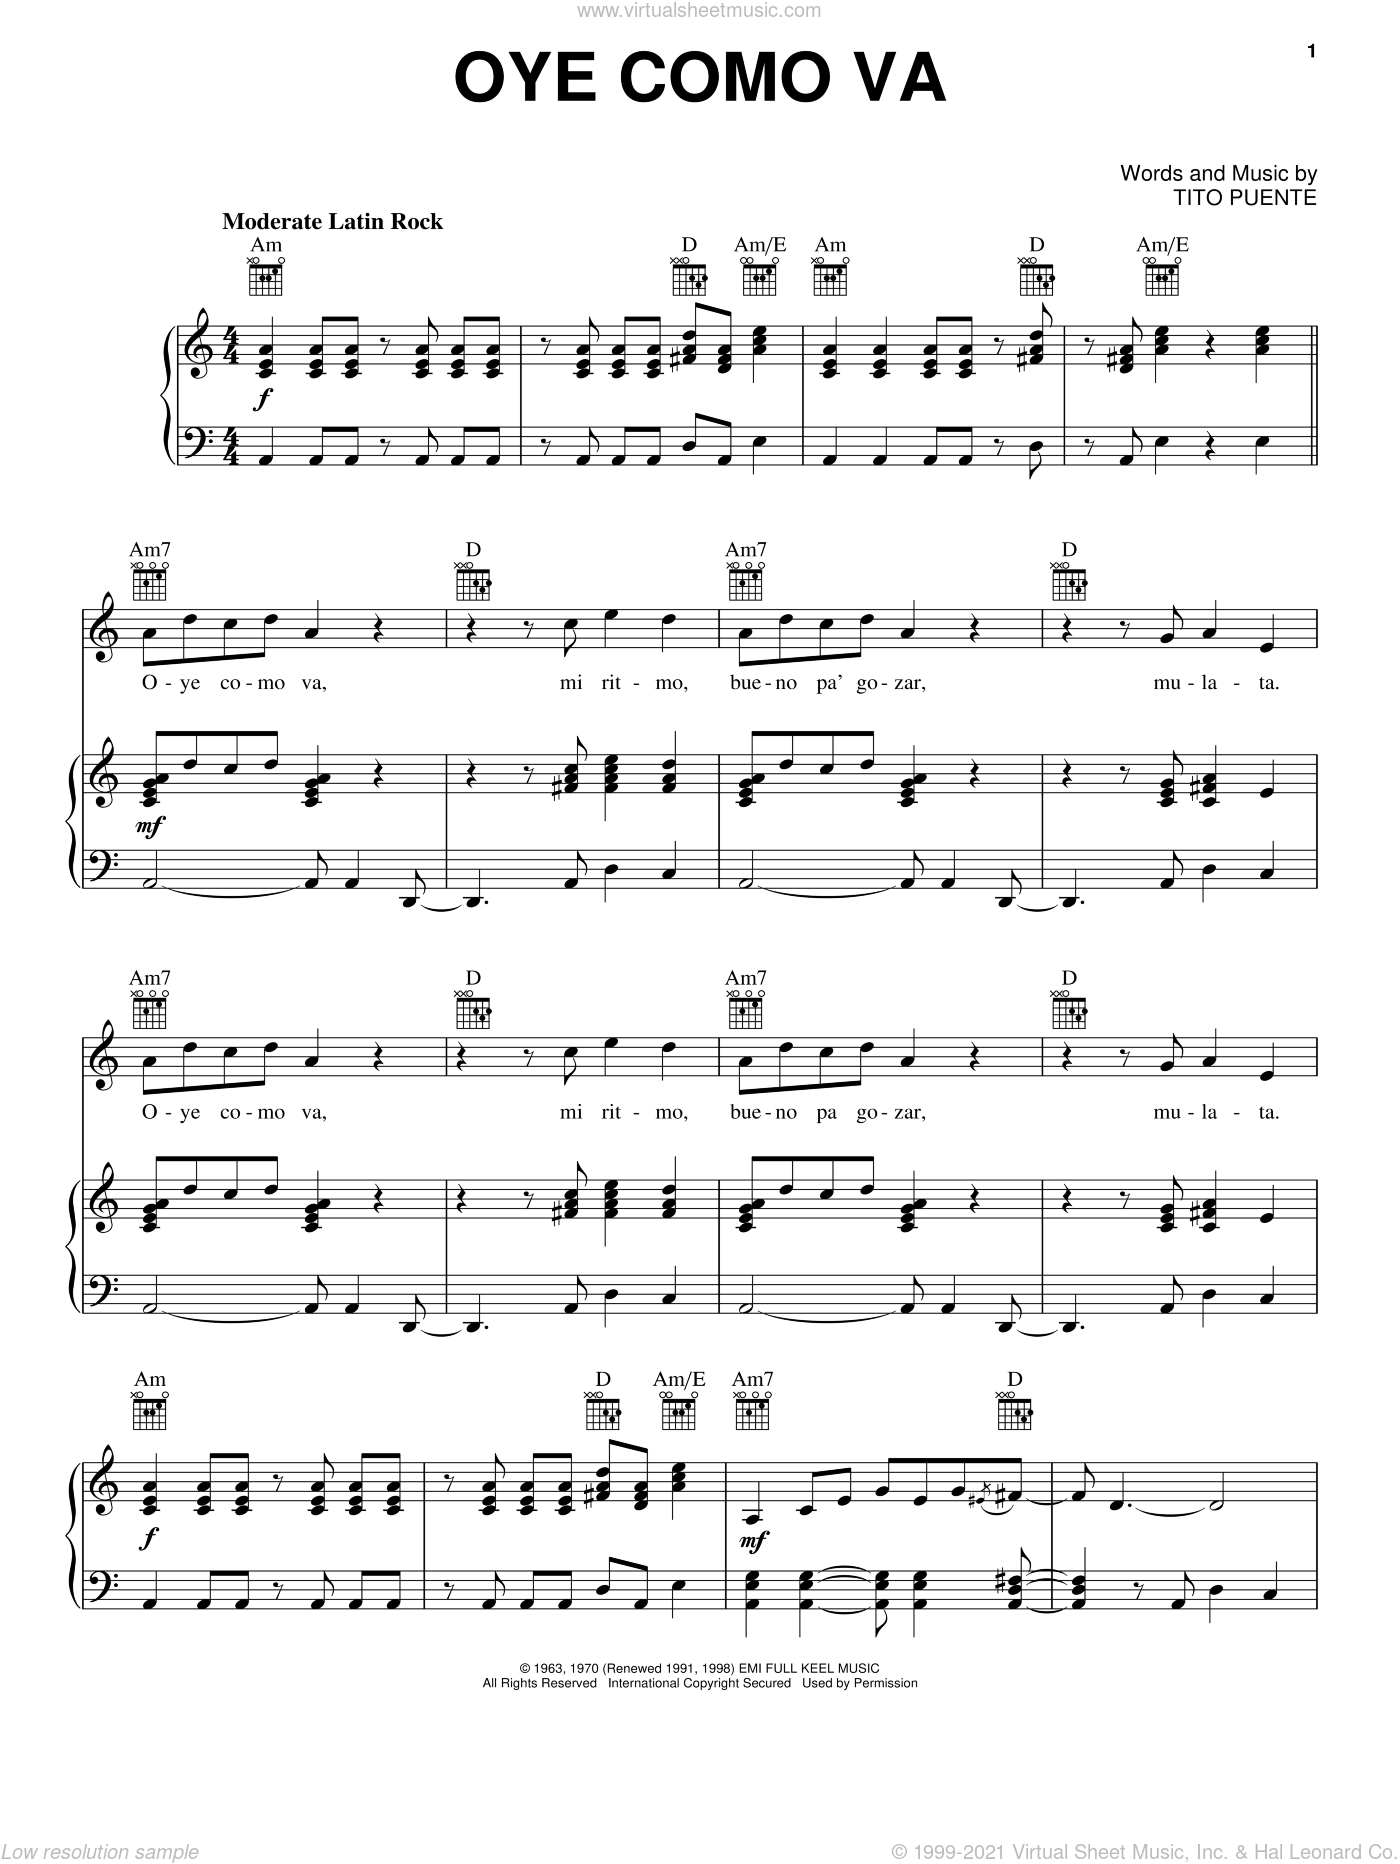 Oye Como Va sheet music for voice, piano or guitar by Tito Puente, Carlos Santana and Percy Faith, intermediate skill level